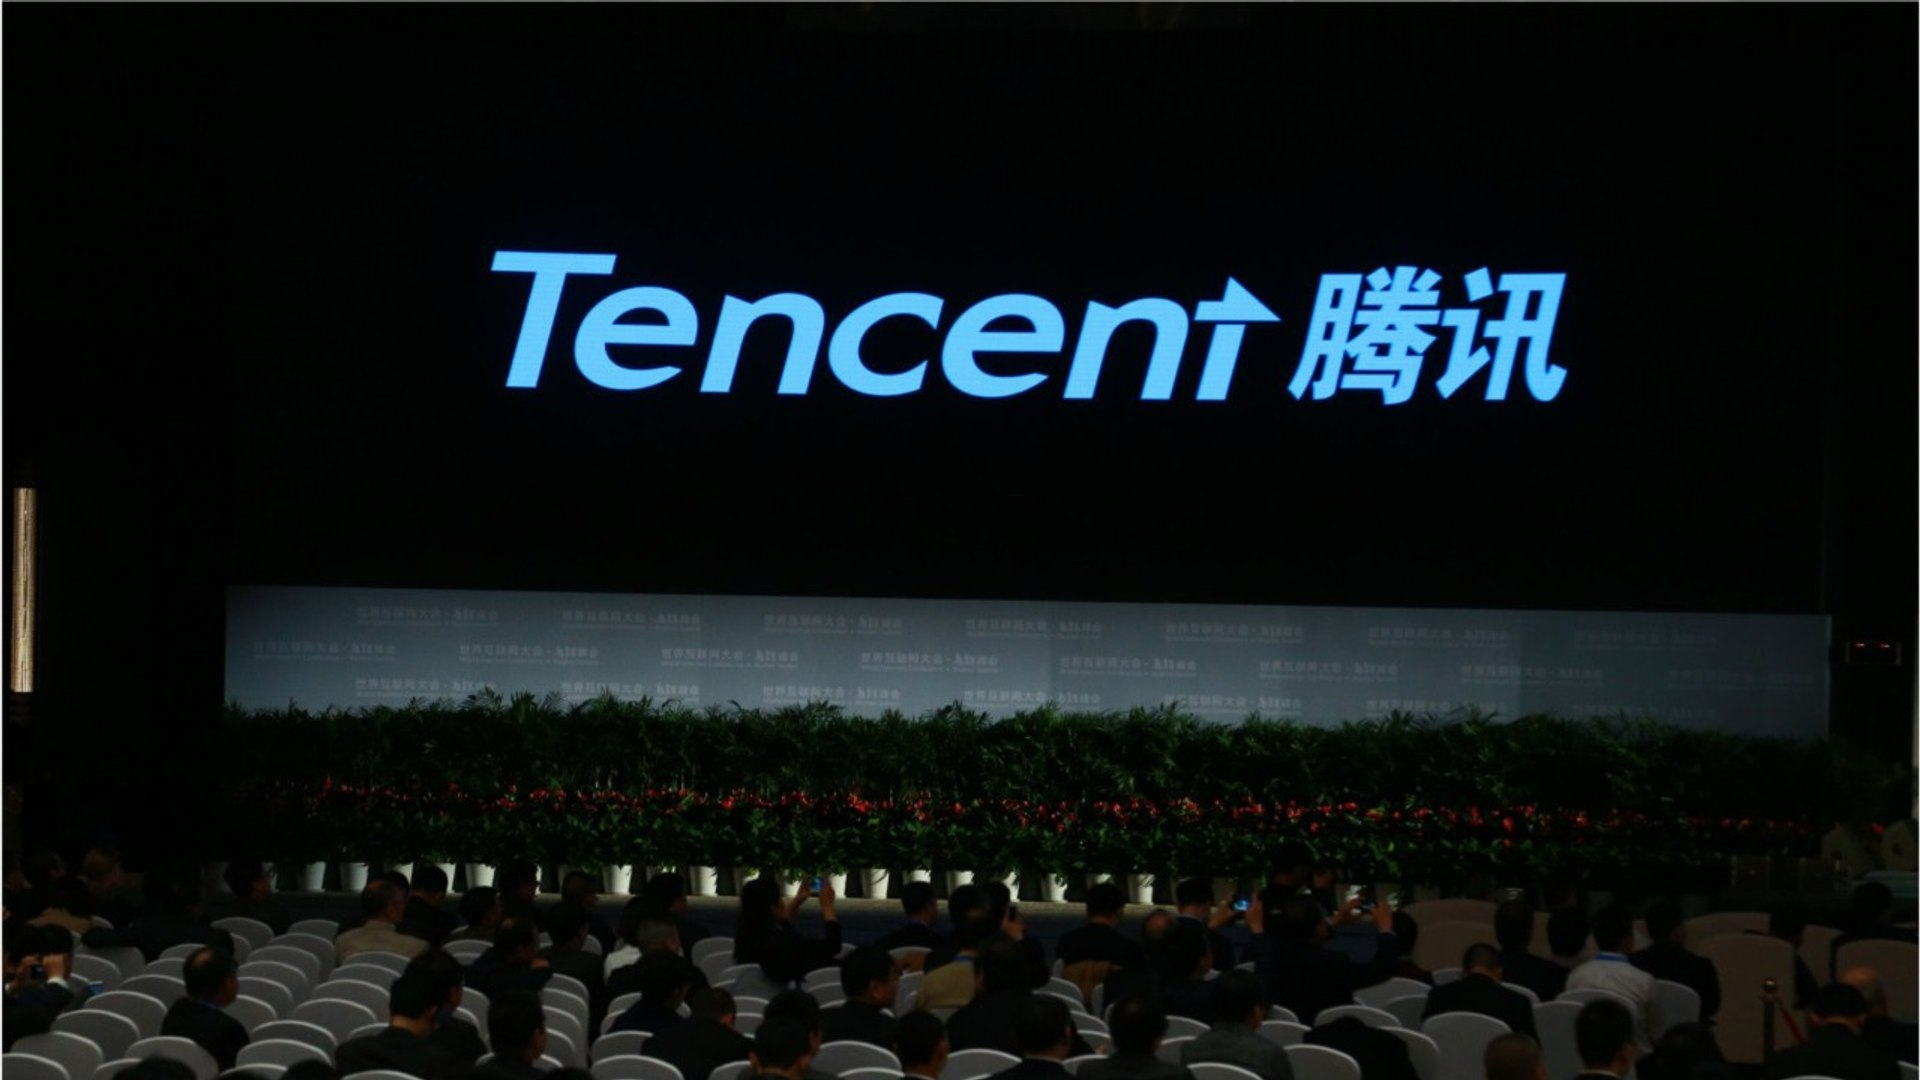 20th Century Fox Partners With China's Tencent For 10 Movies Project